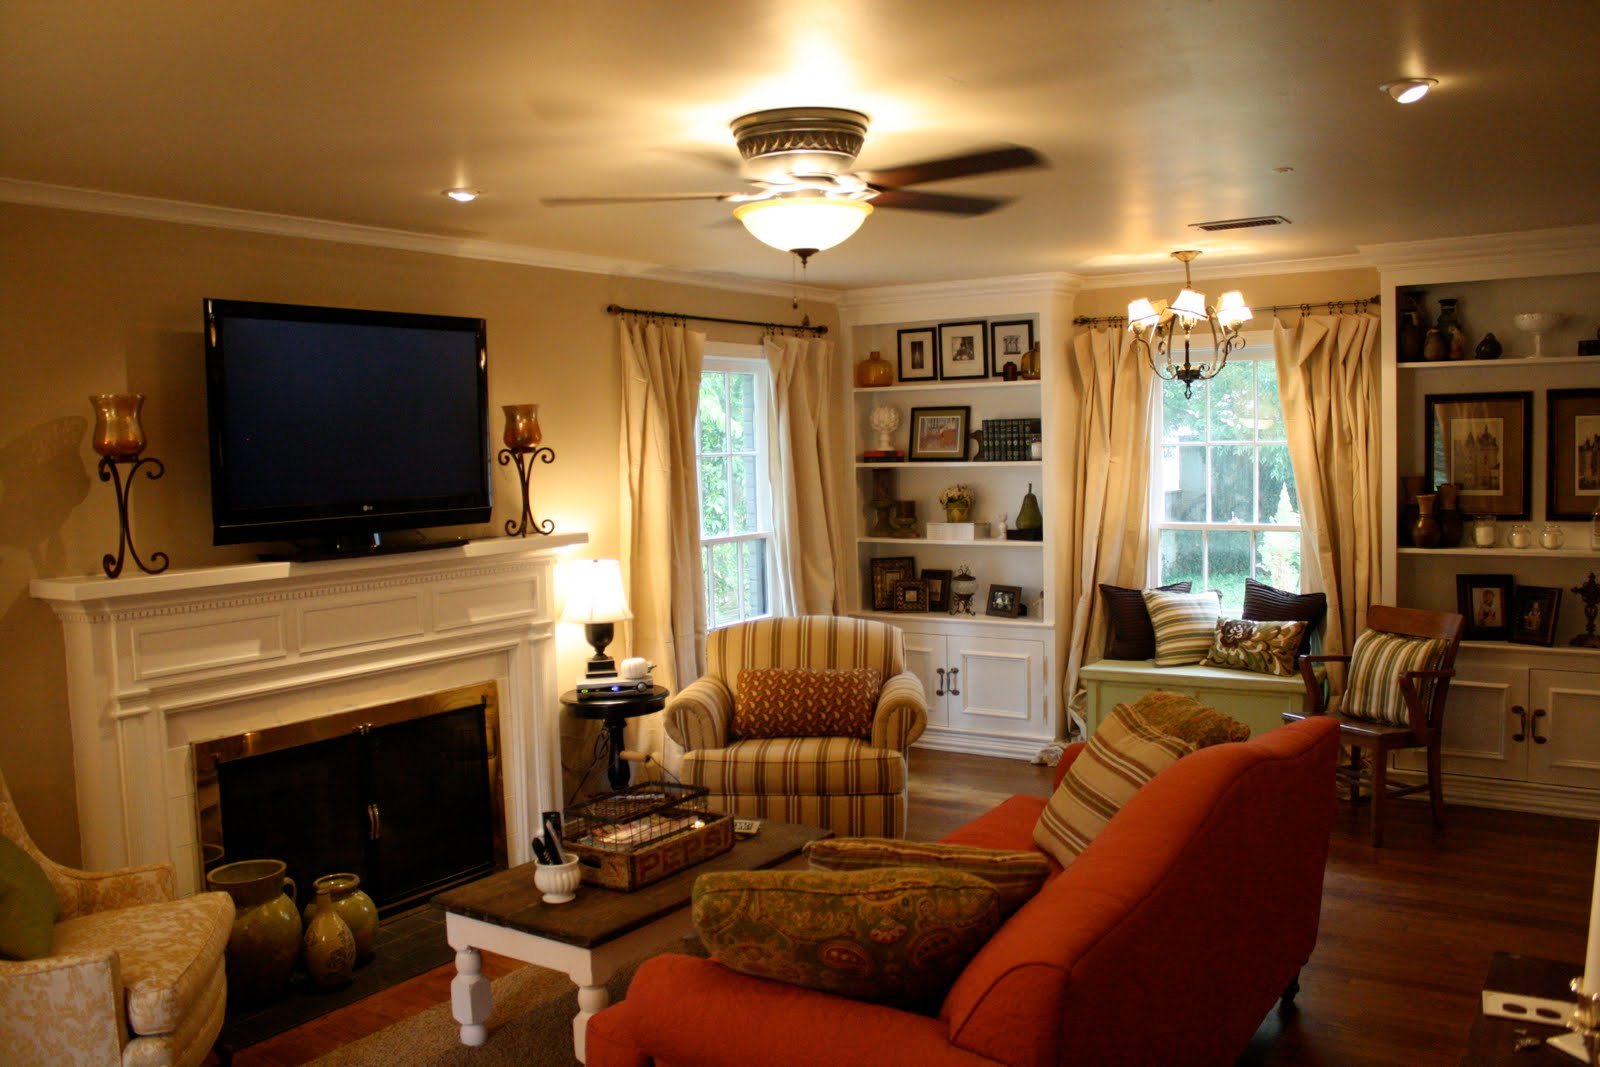 Updated Living Room From Italian To